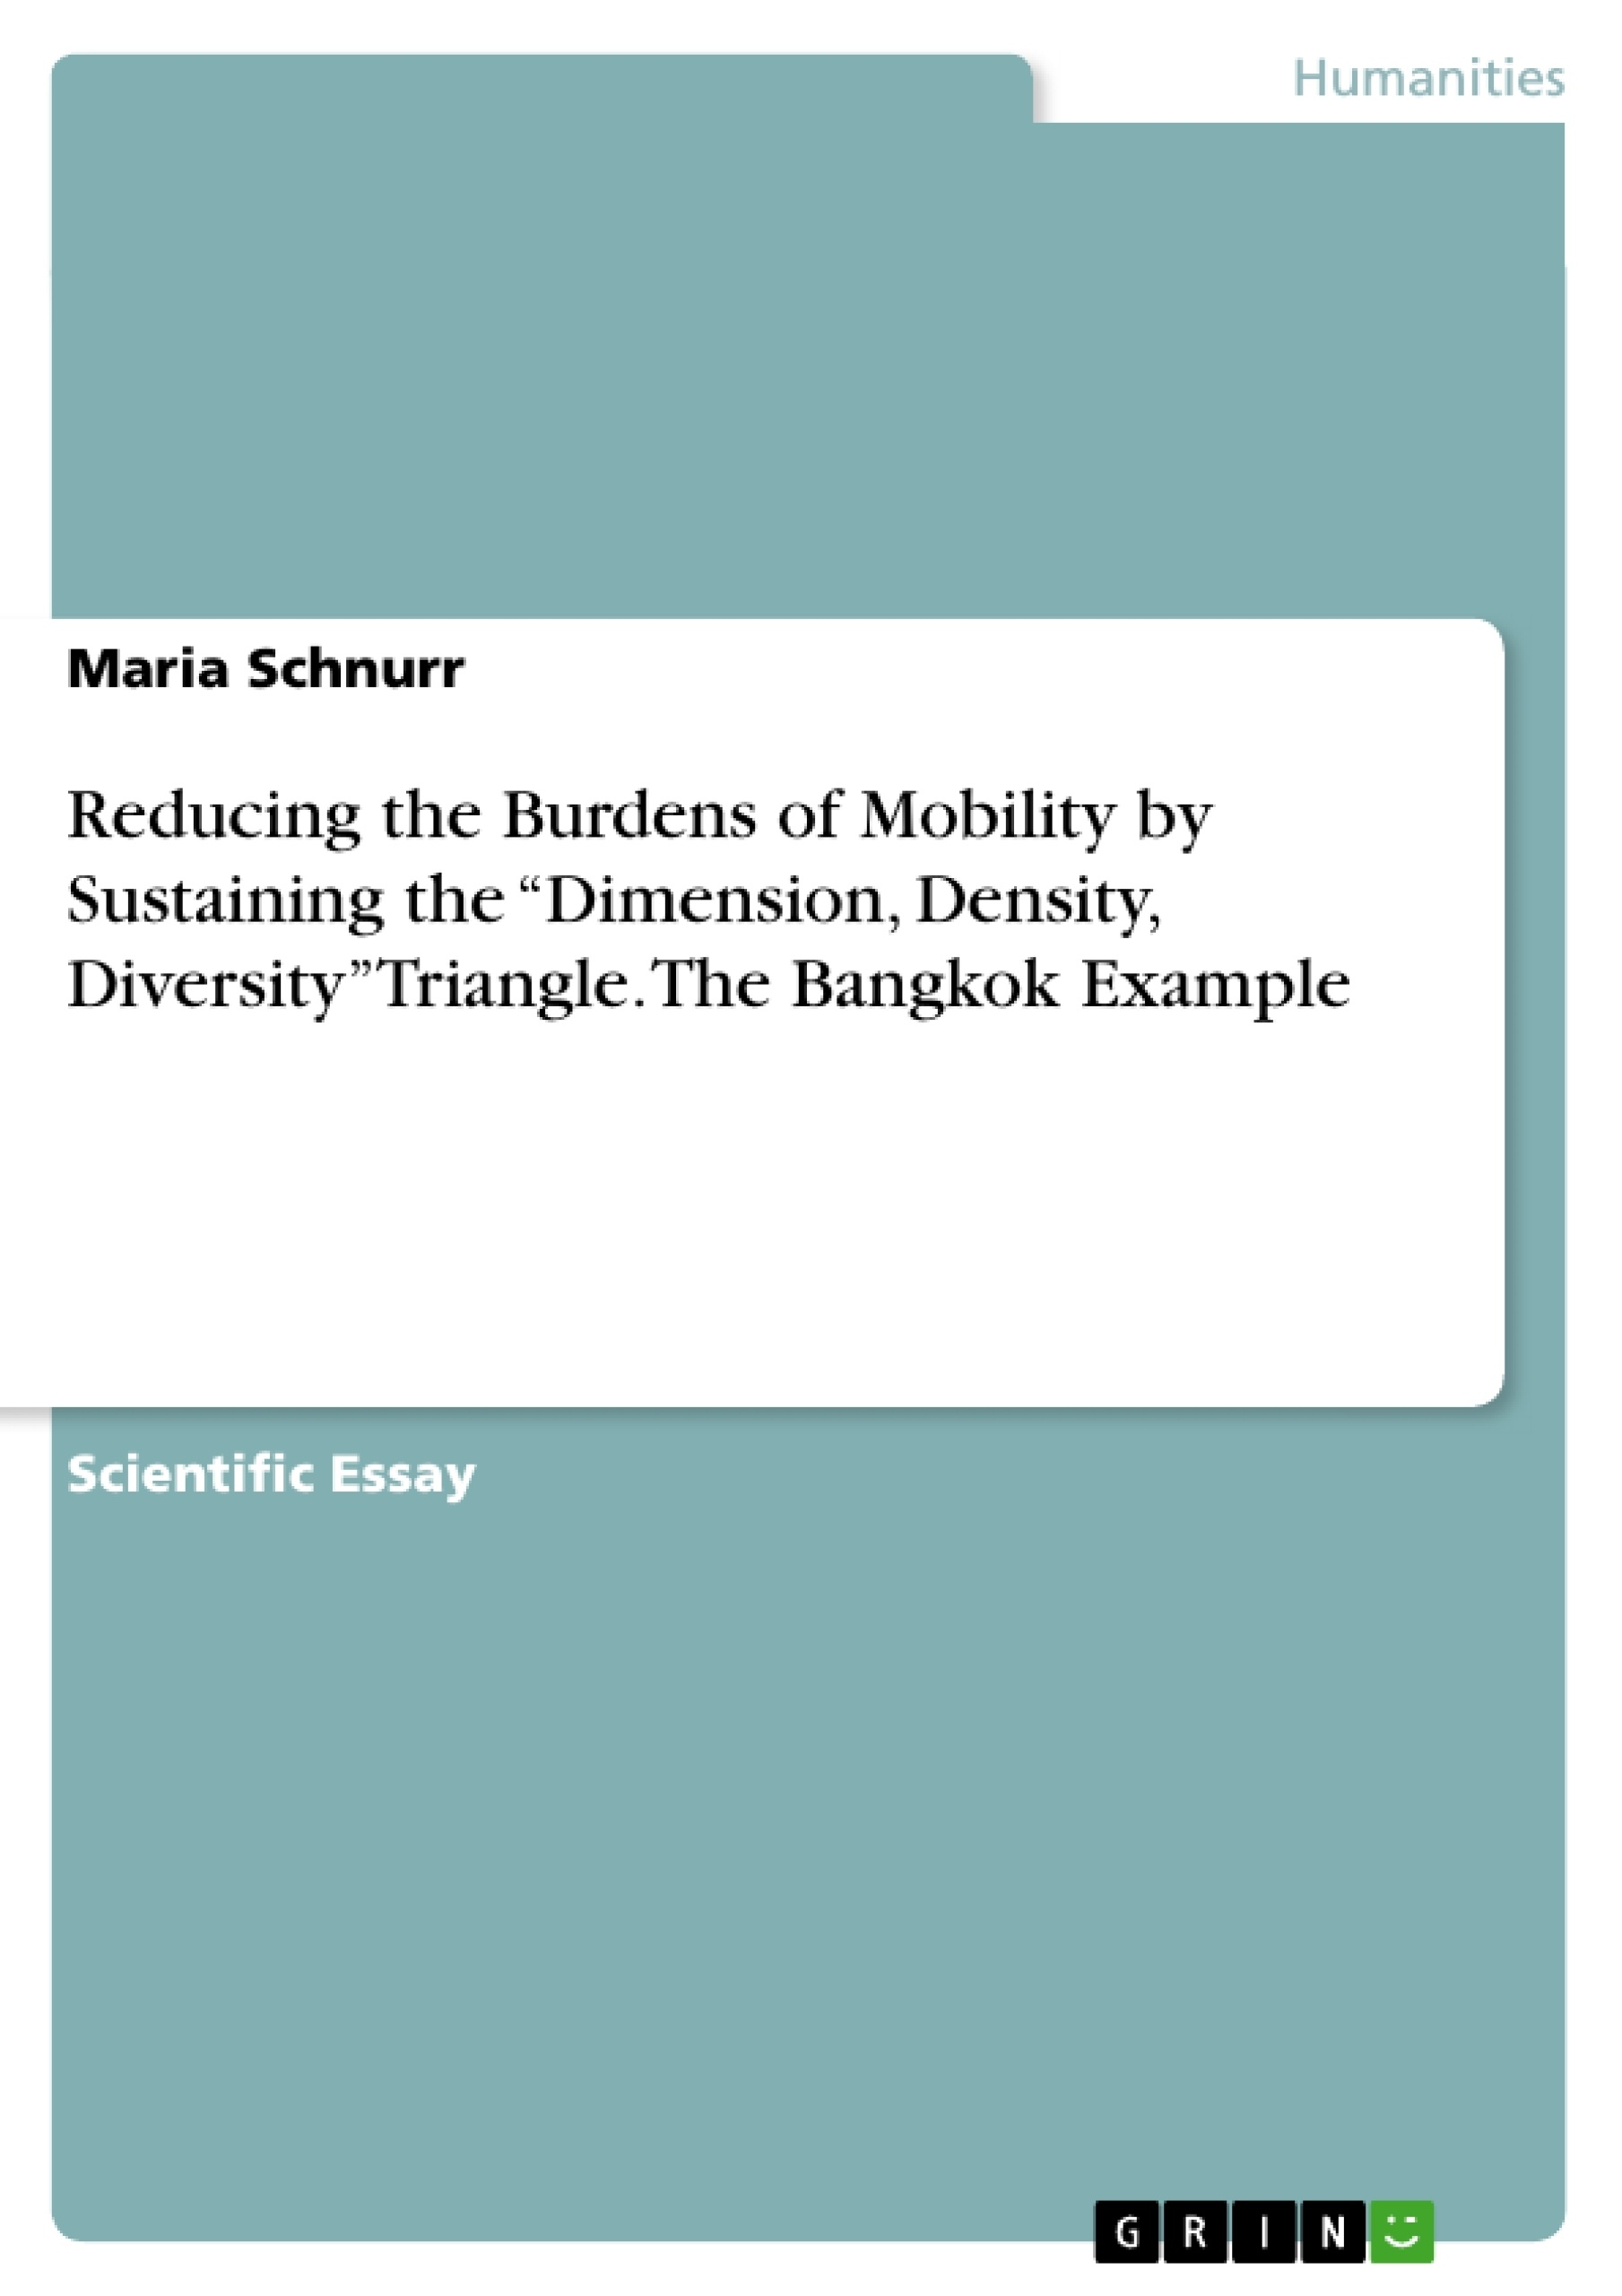 """Title: Reducing the Burdens of Mobility by Sustaining the """"Dimension, Density, Diversity"""" Triangle. The Bangkok Example"""